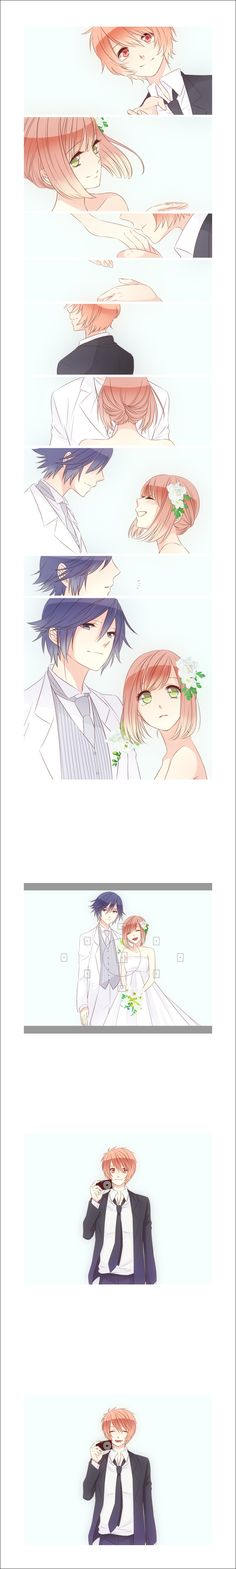 Uta no Prince-sama - ...... Awwwww poor guy ( I can't remember anyone's name except Syo's ) ...... *cries*